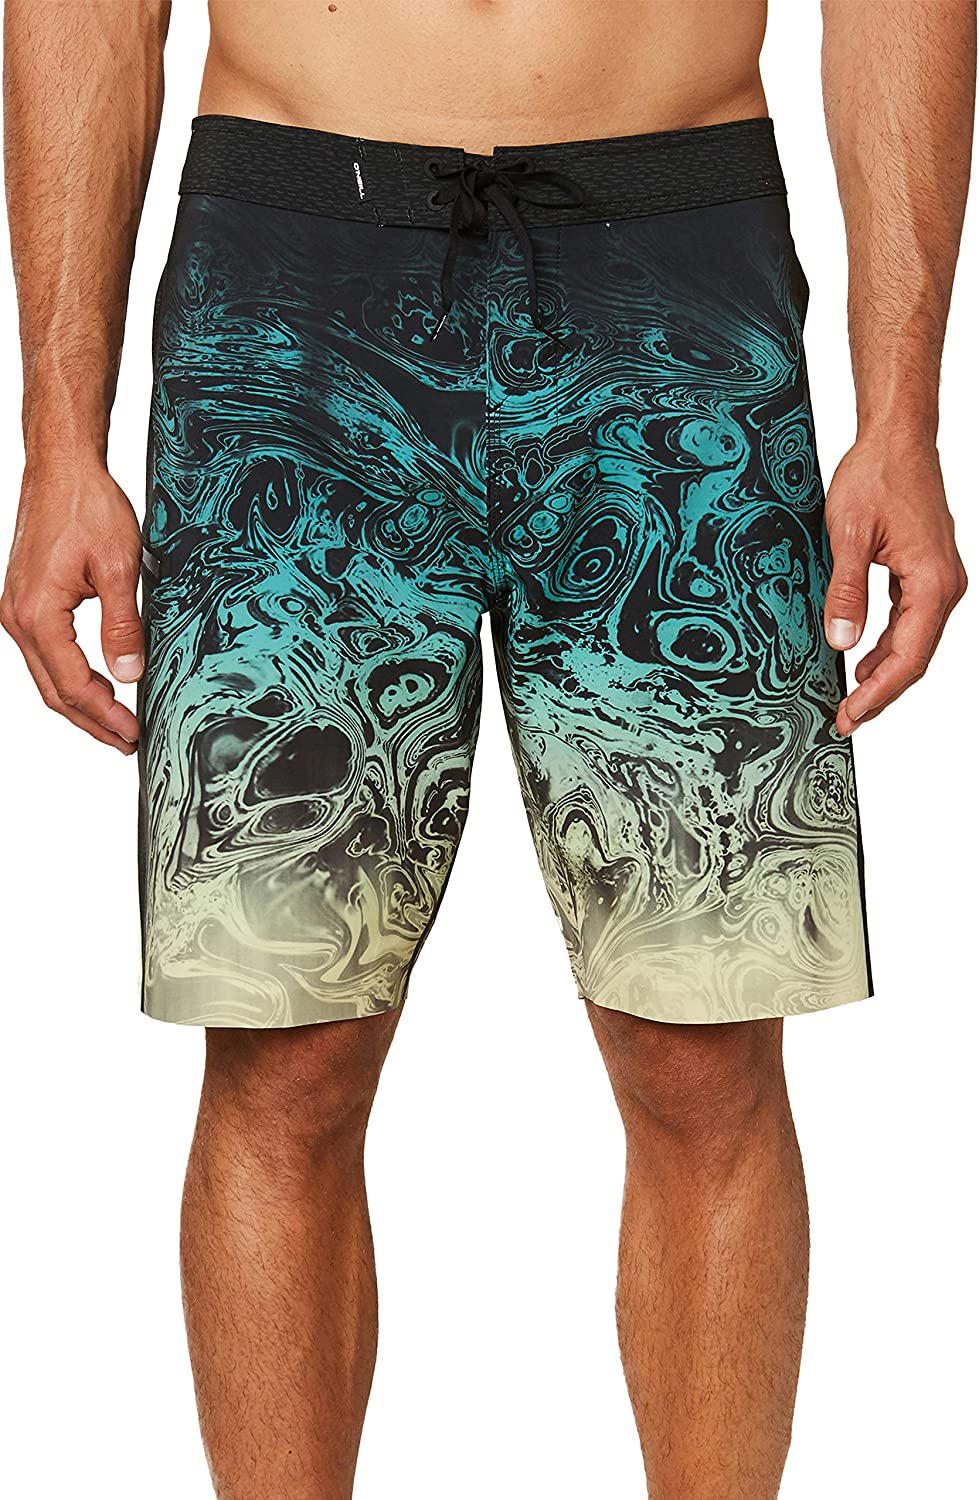 ONEILL Mens Water Resistant Hyperfreak Stretch Swim Boardshorts 20 Inch Outseam Mid-Length Swimsuit